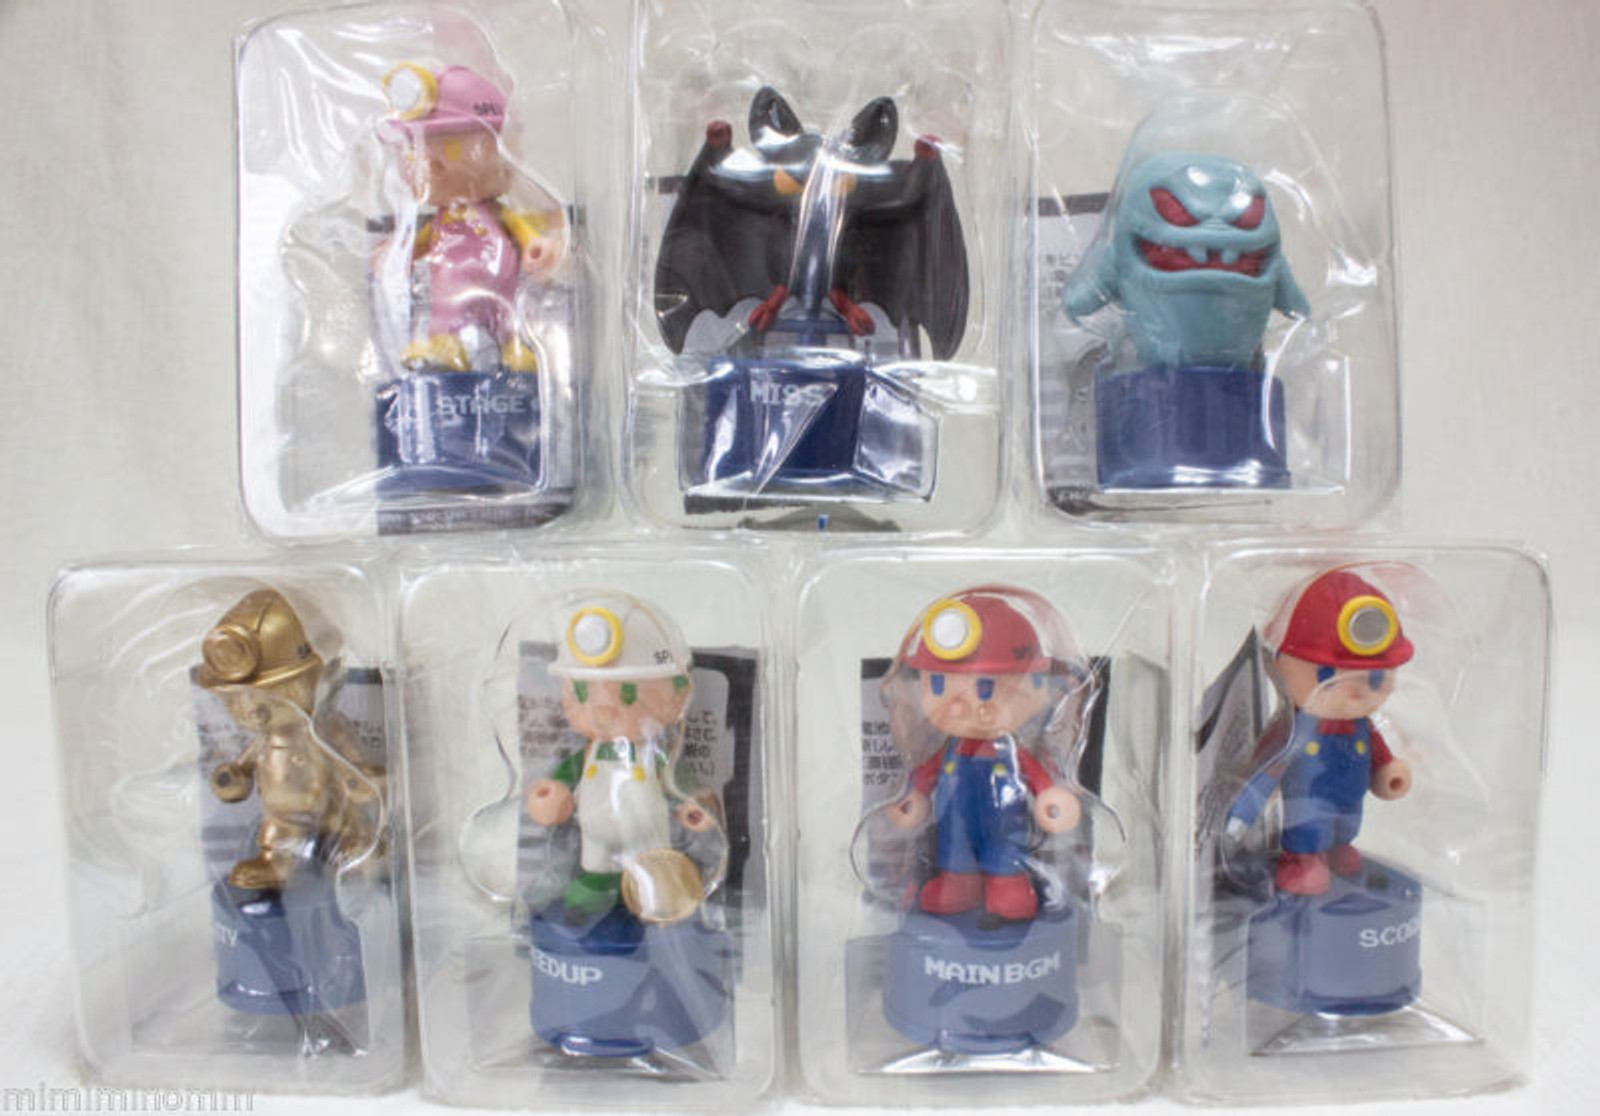 Set of 7 Spelunker Sound Bottle Cap Figure Collection Included Secret JAPAN NES